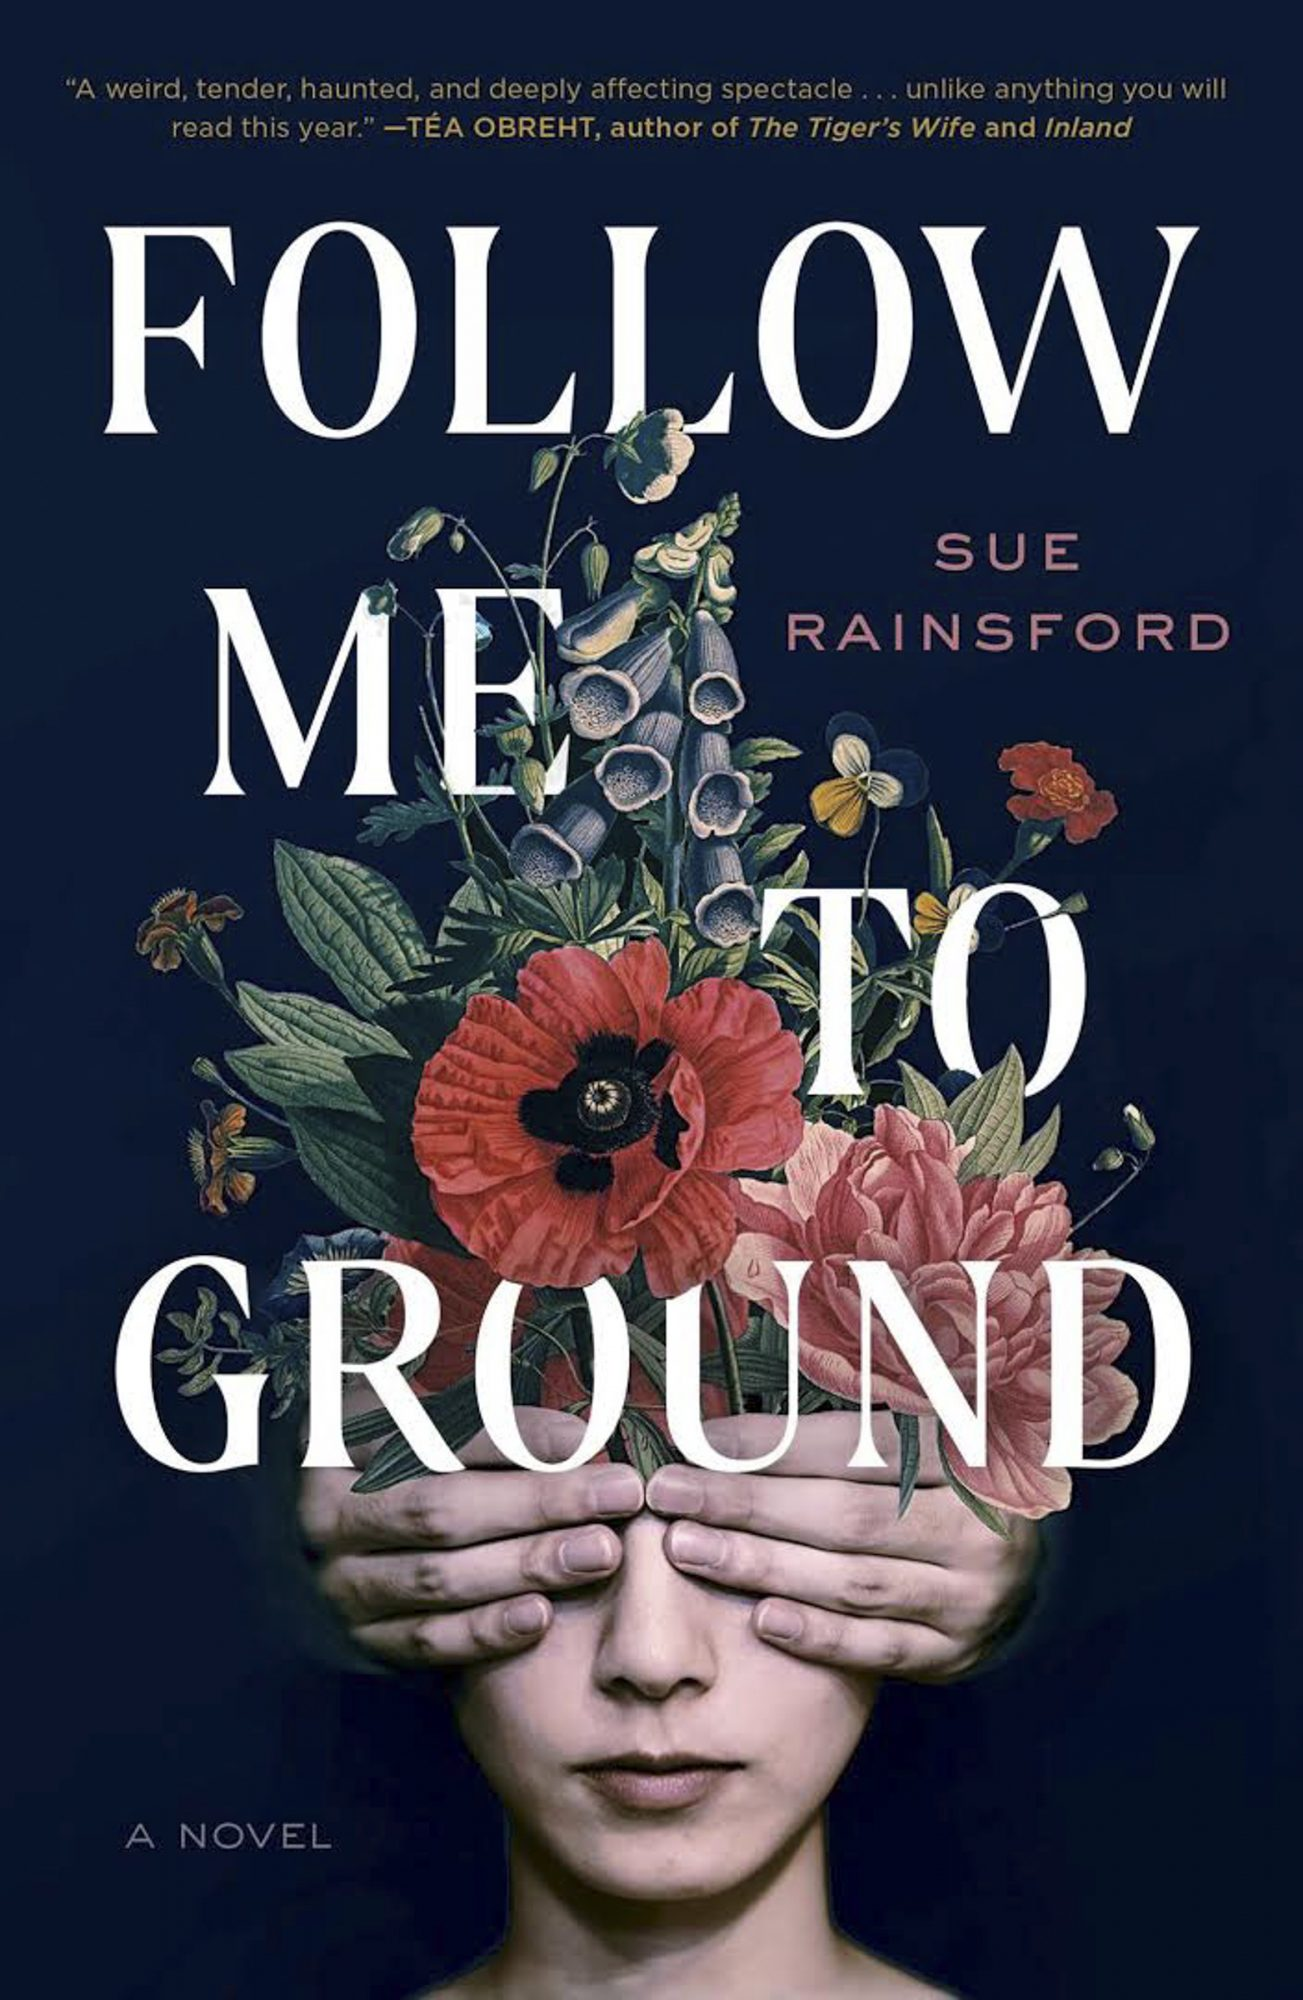 Follow Me to Ground by Sue Rainsford CR: Simon & Schuster